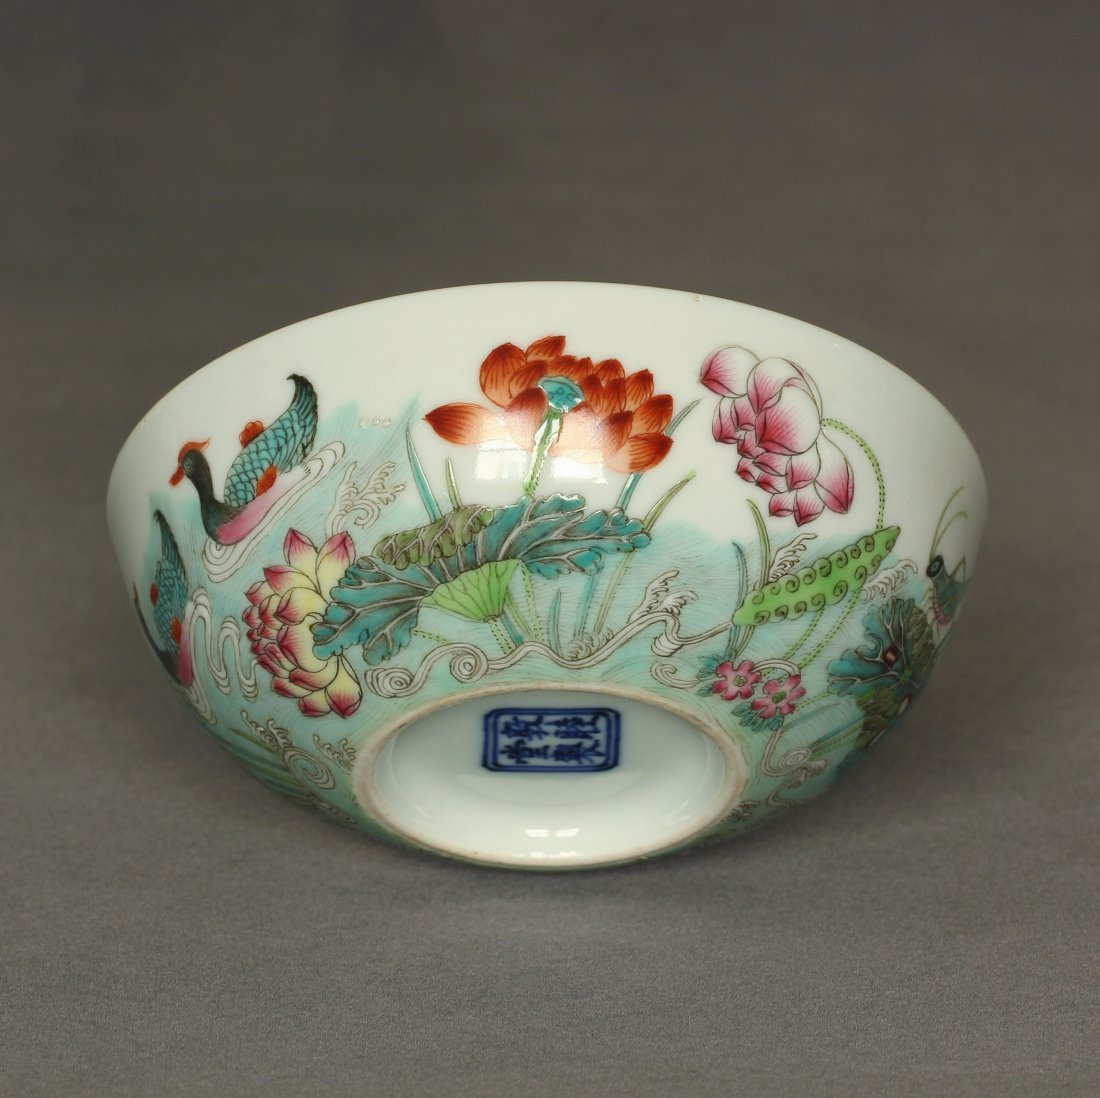 Famille rose porcelain bowl of Qing Dynasty DunMuTang - 9